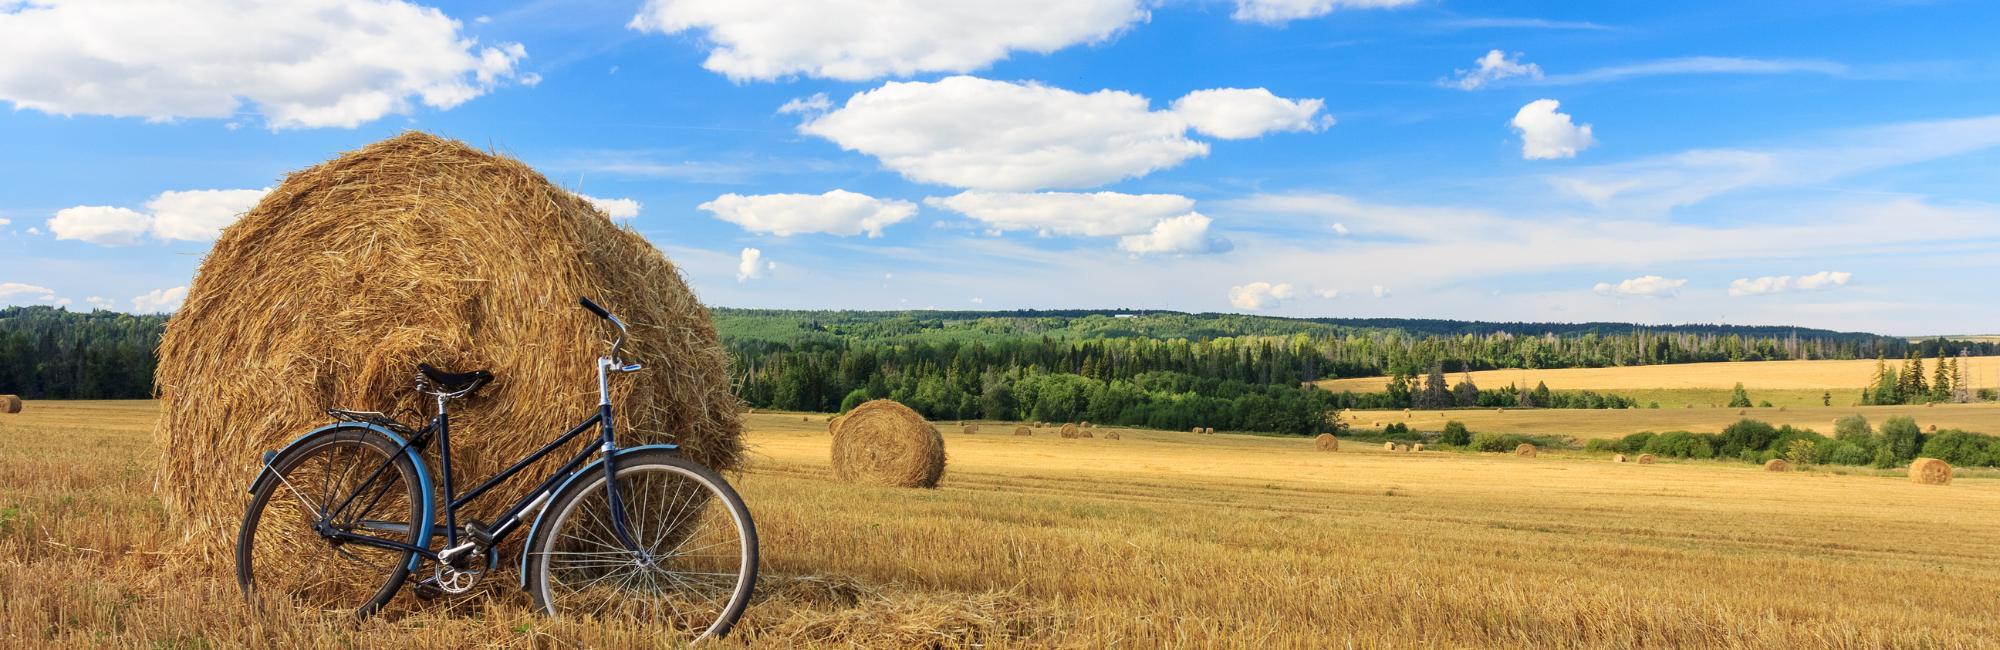 cereal field and bicycle